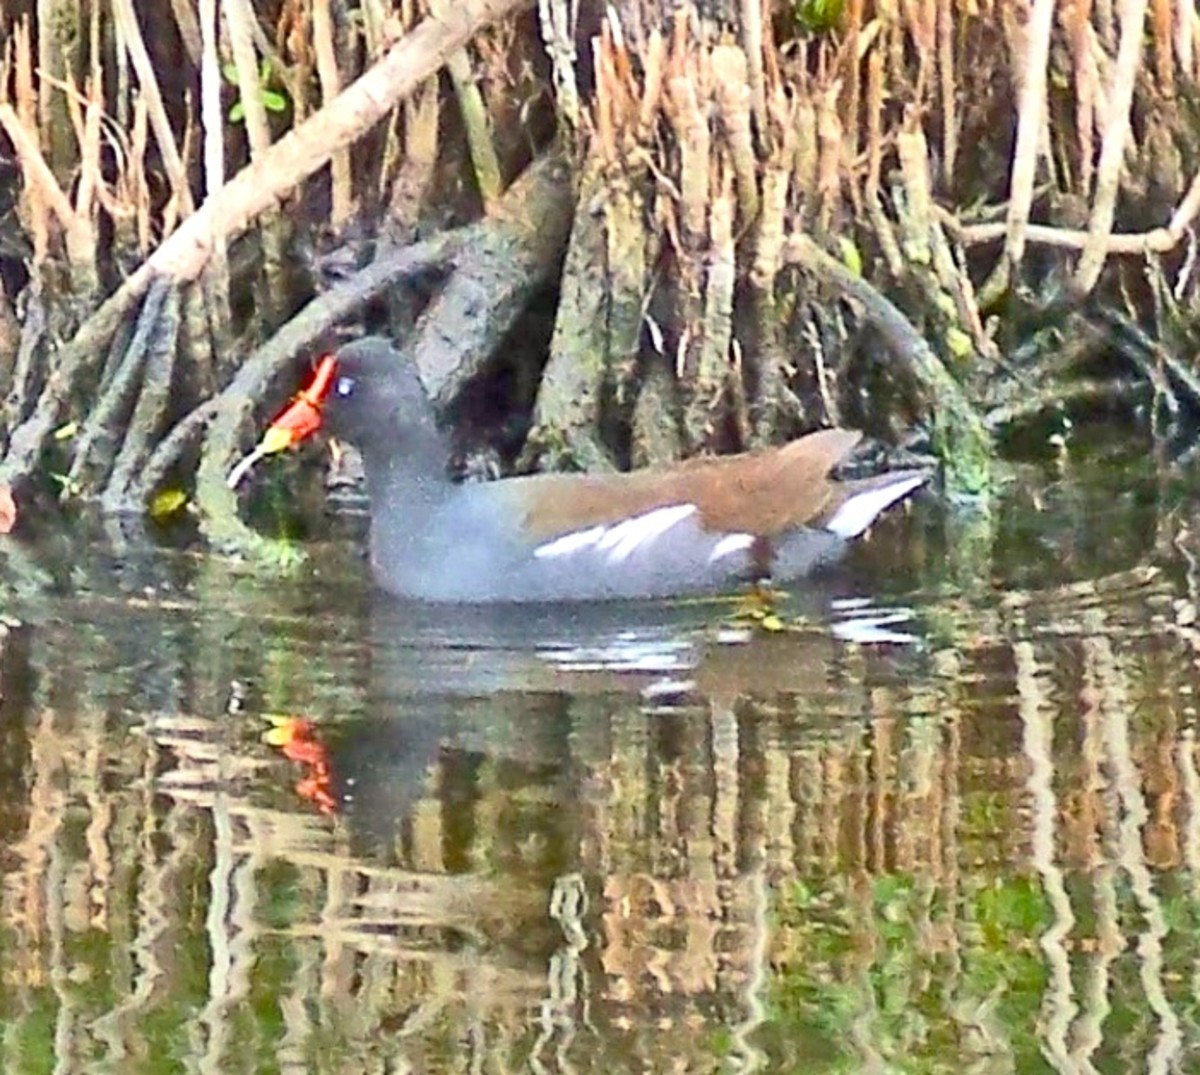 The Purple Gallinule can walk on floating plants.